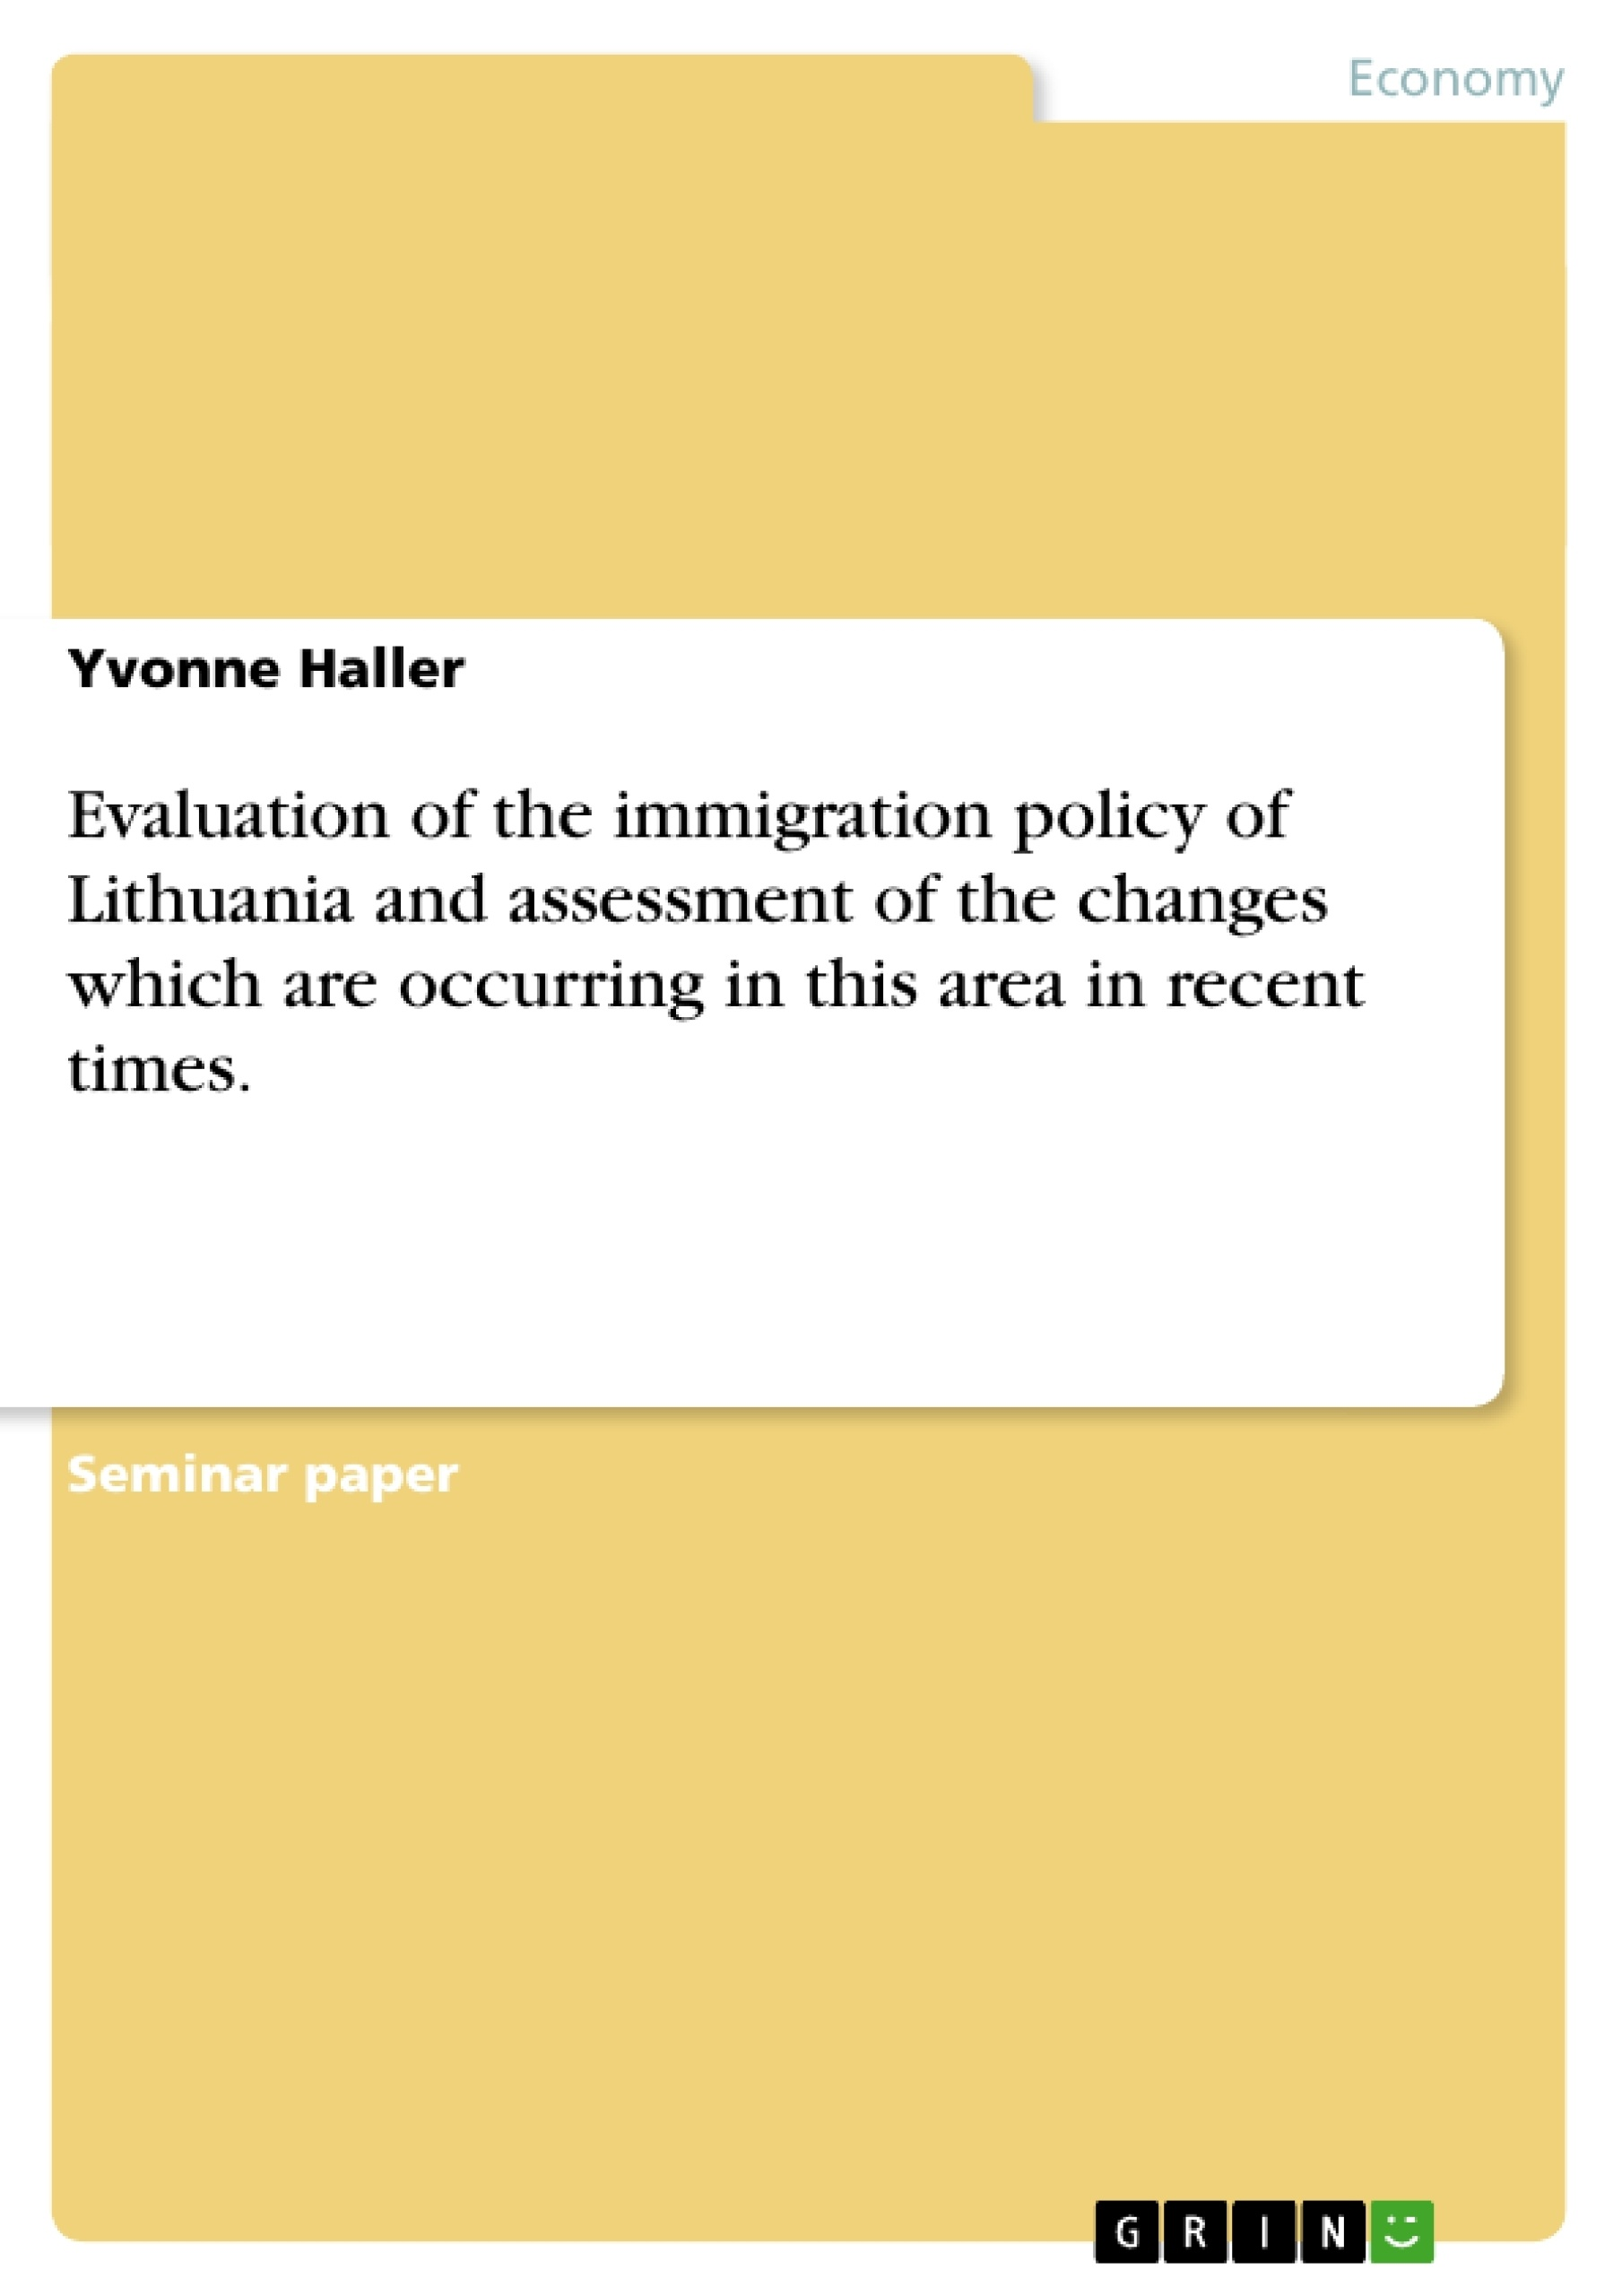 Title: Evaluation of the immigration policy of Lithuania and assessment of the changes which are occurring in this area in recent times.